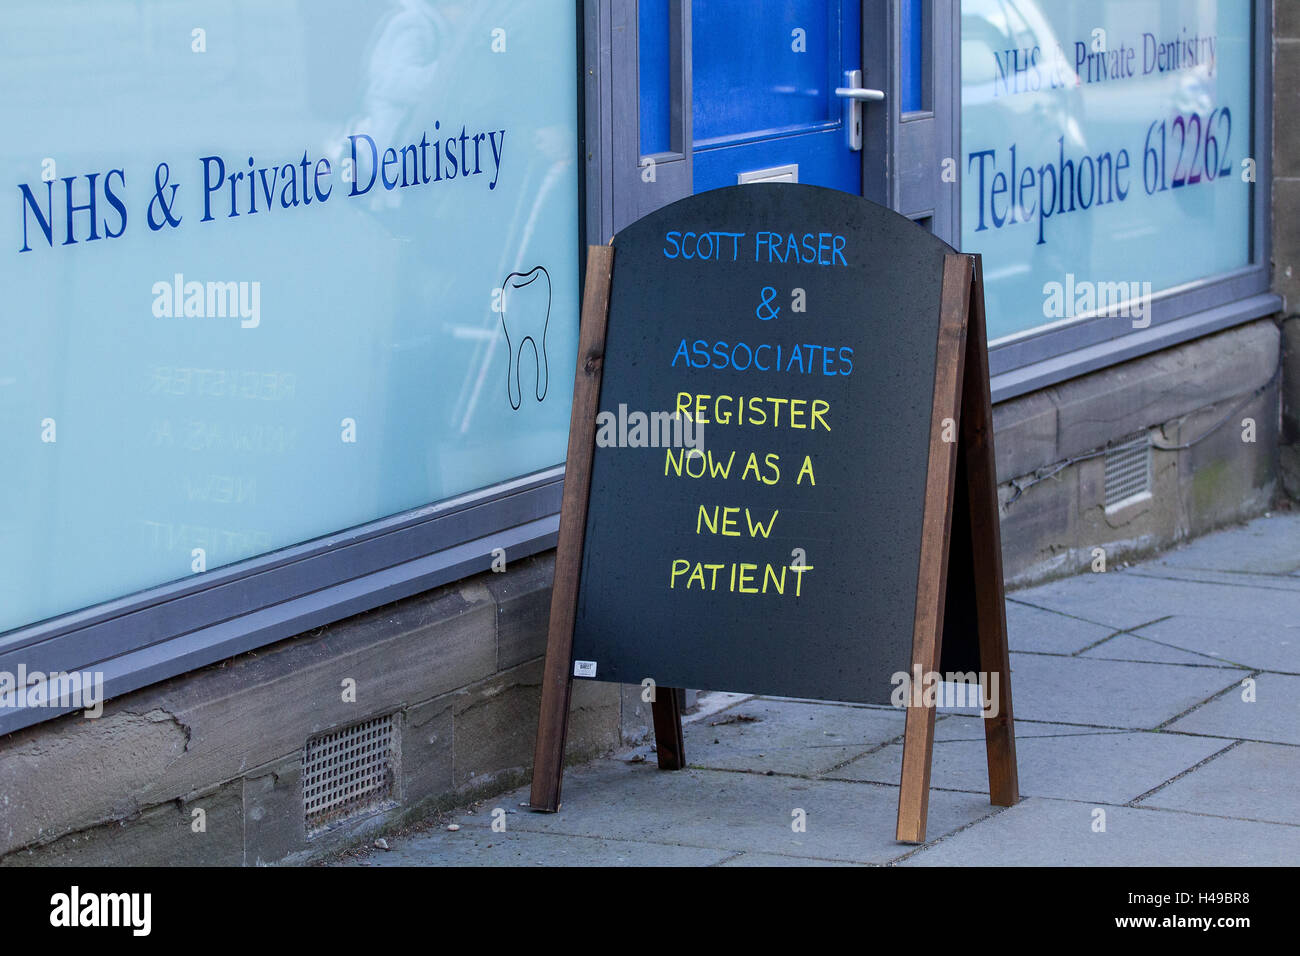 Scott Fraser & Associate Dental Surgery NHS is a Private Dental Surgery located at 48 High St Lochee in Dundee, - Stock Image